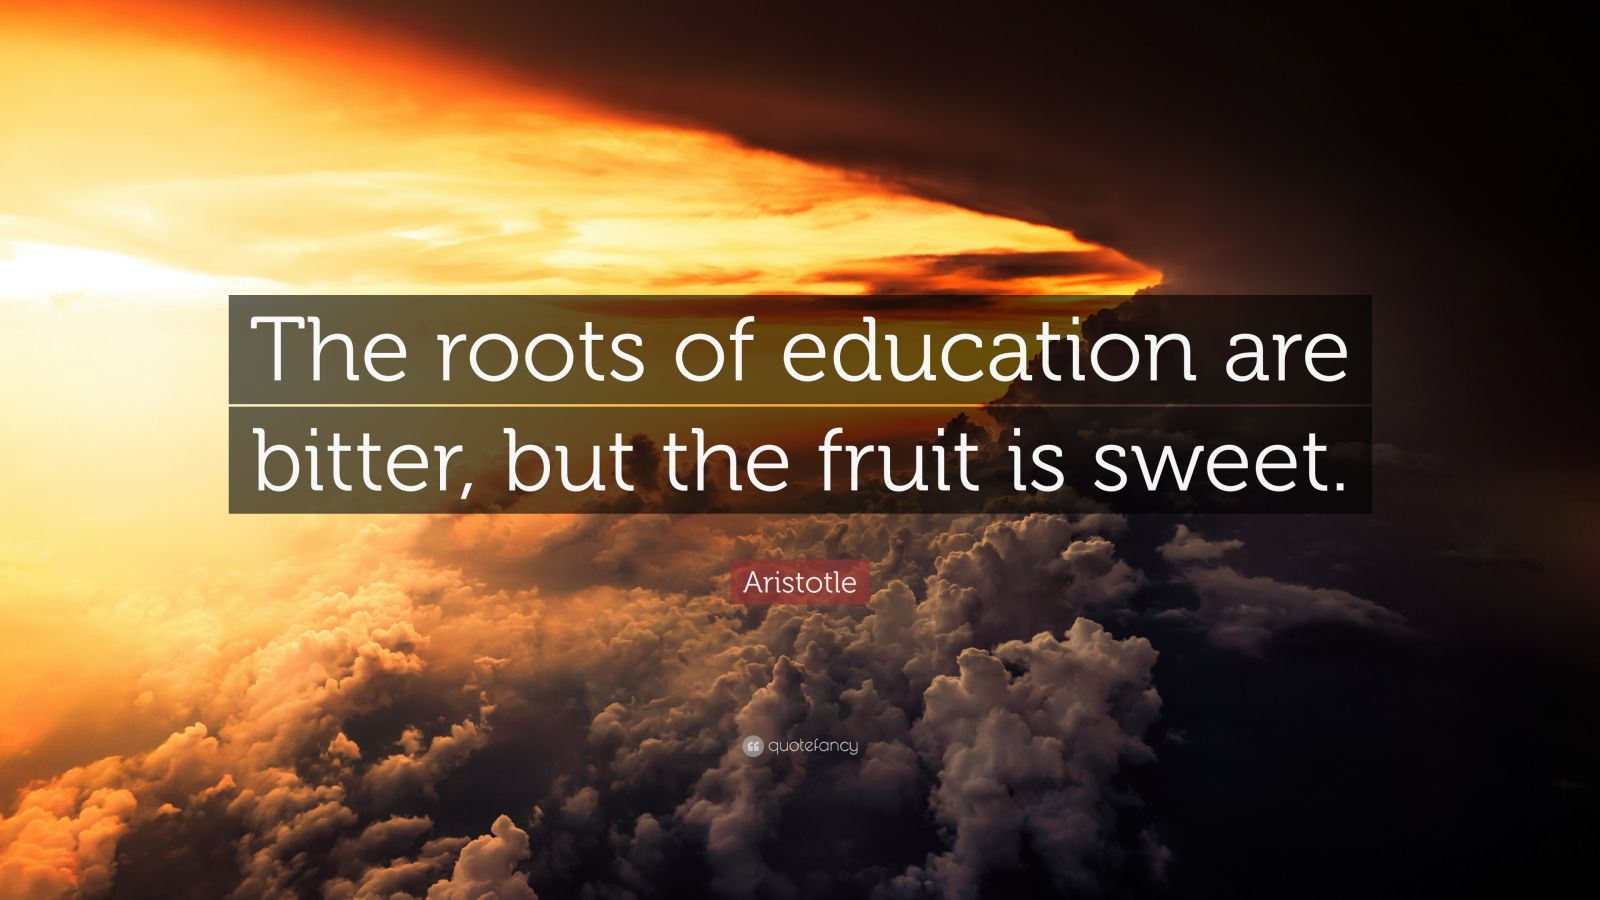 aristotle quote roots education bitter fruit sweet wallpapers